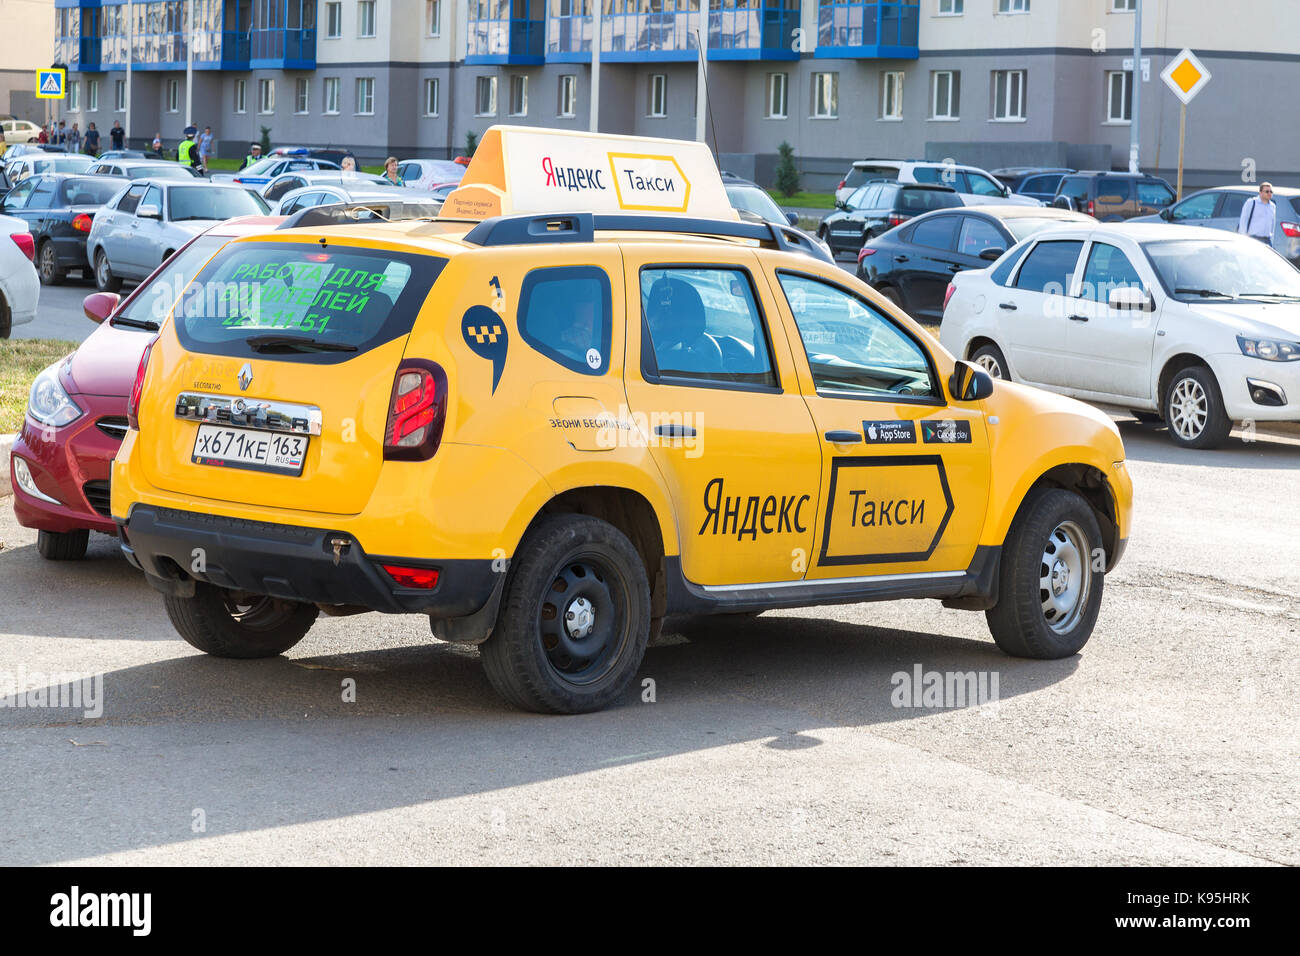 Samara, Russia - September 17, 2017: Yandex taxi at the city street in Samara, Russia - Stock Image